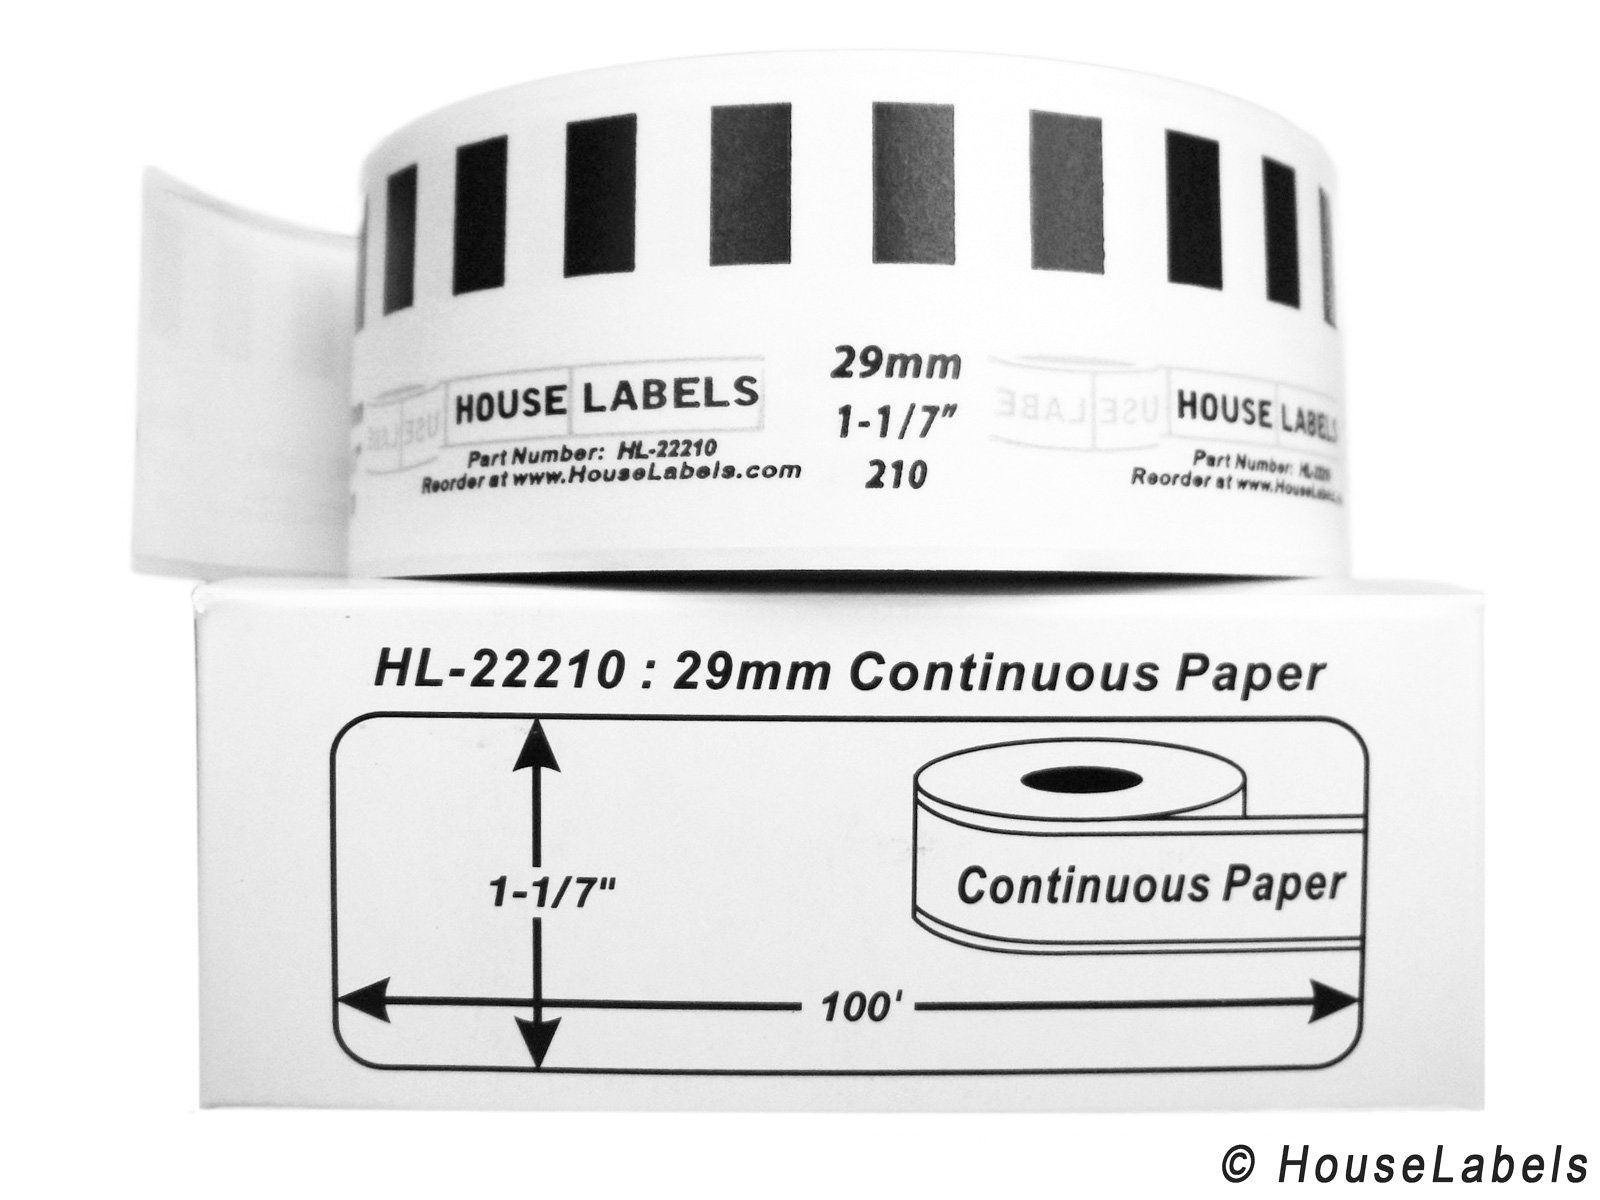 Houselabels 6 Rolls; Continuous Paper, BROTHER-Compatible DK-2210 Continuous Paper Labels (1-1/7'' x 100'; 29mm30.48m) -- BPA Free!